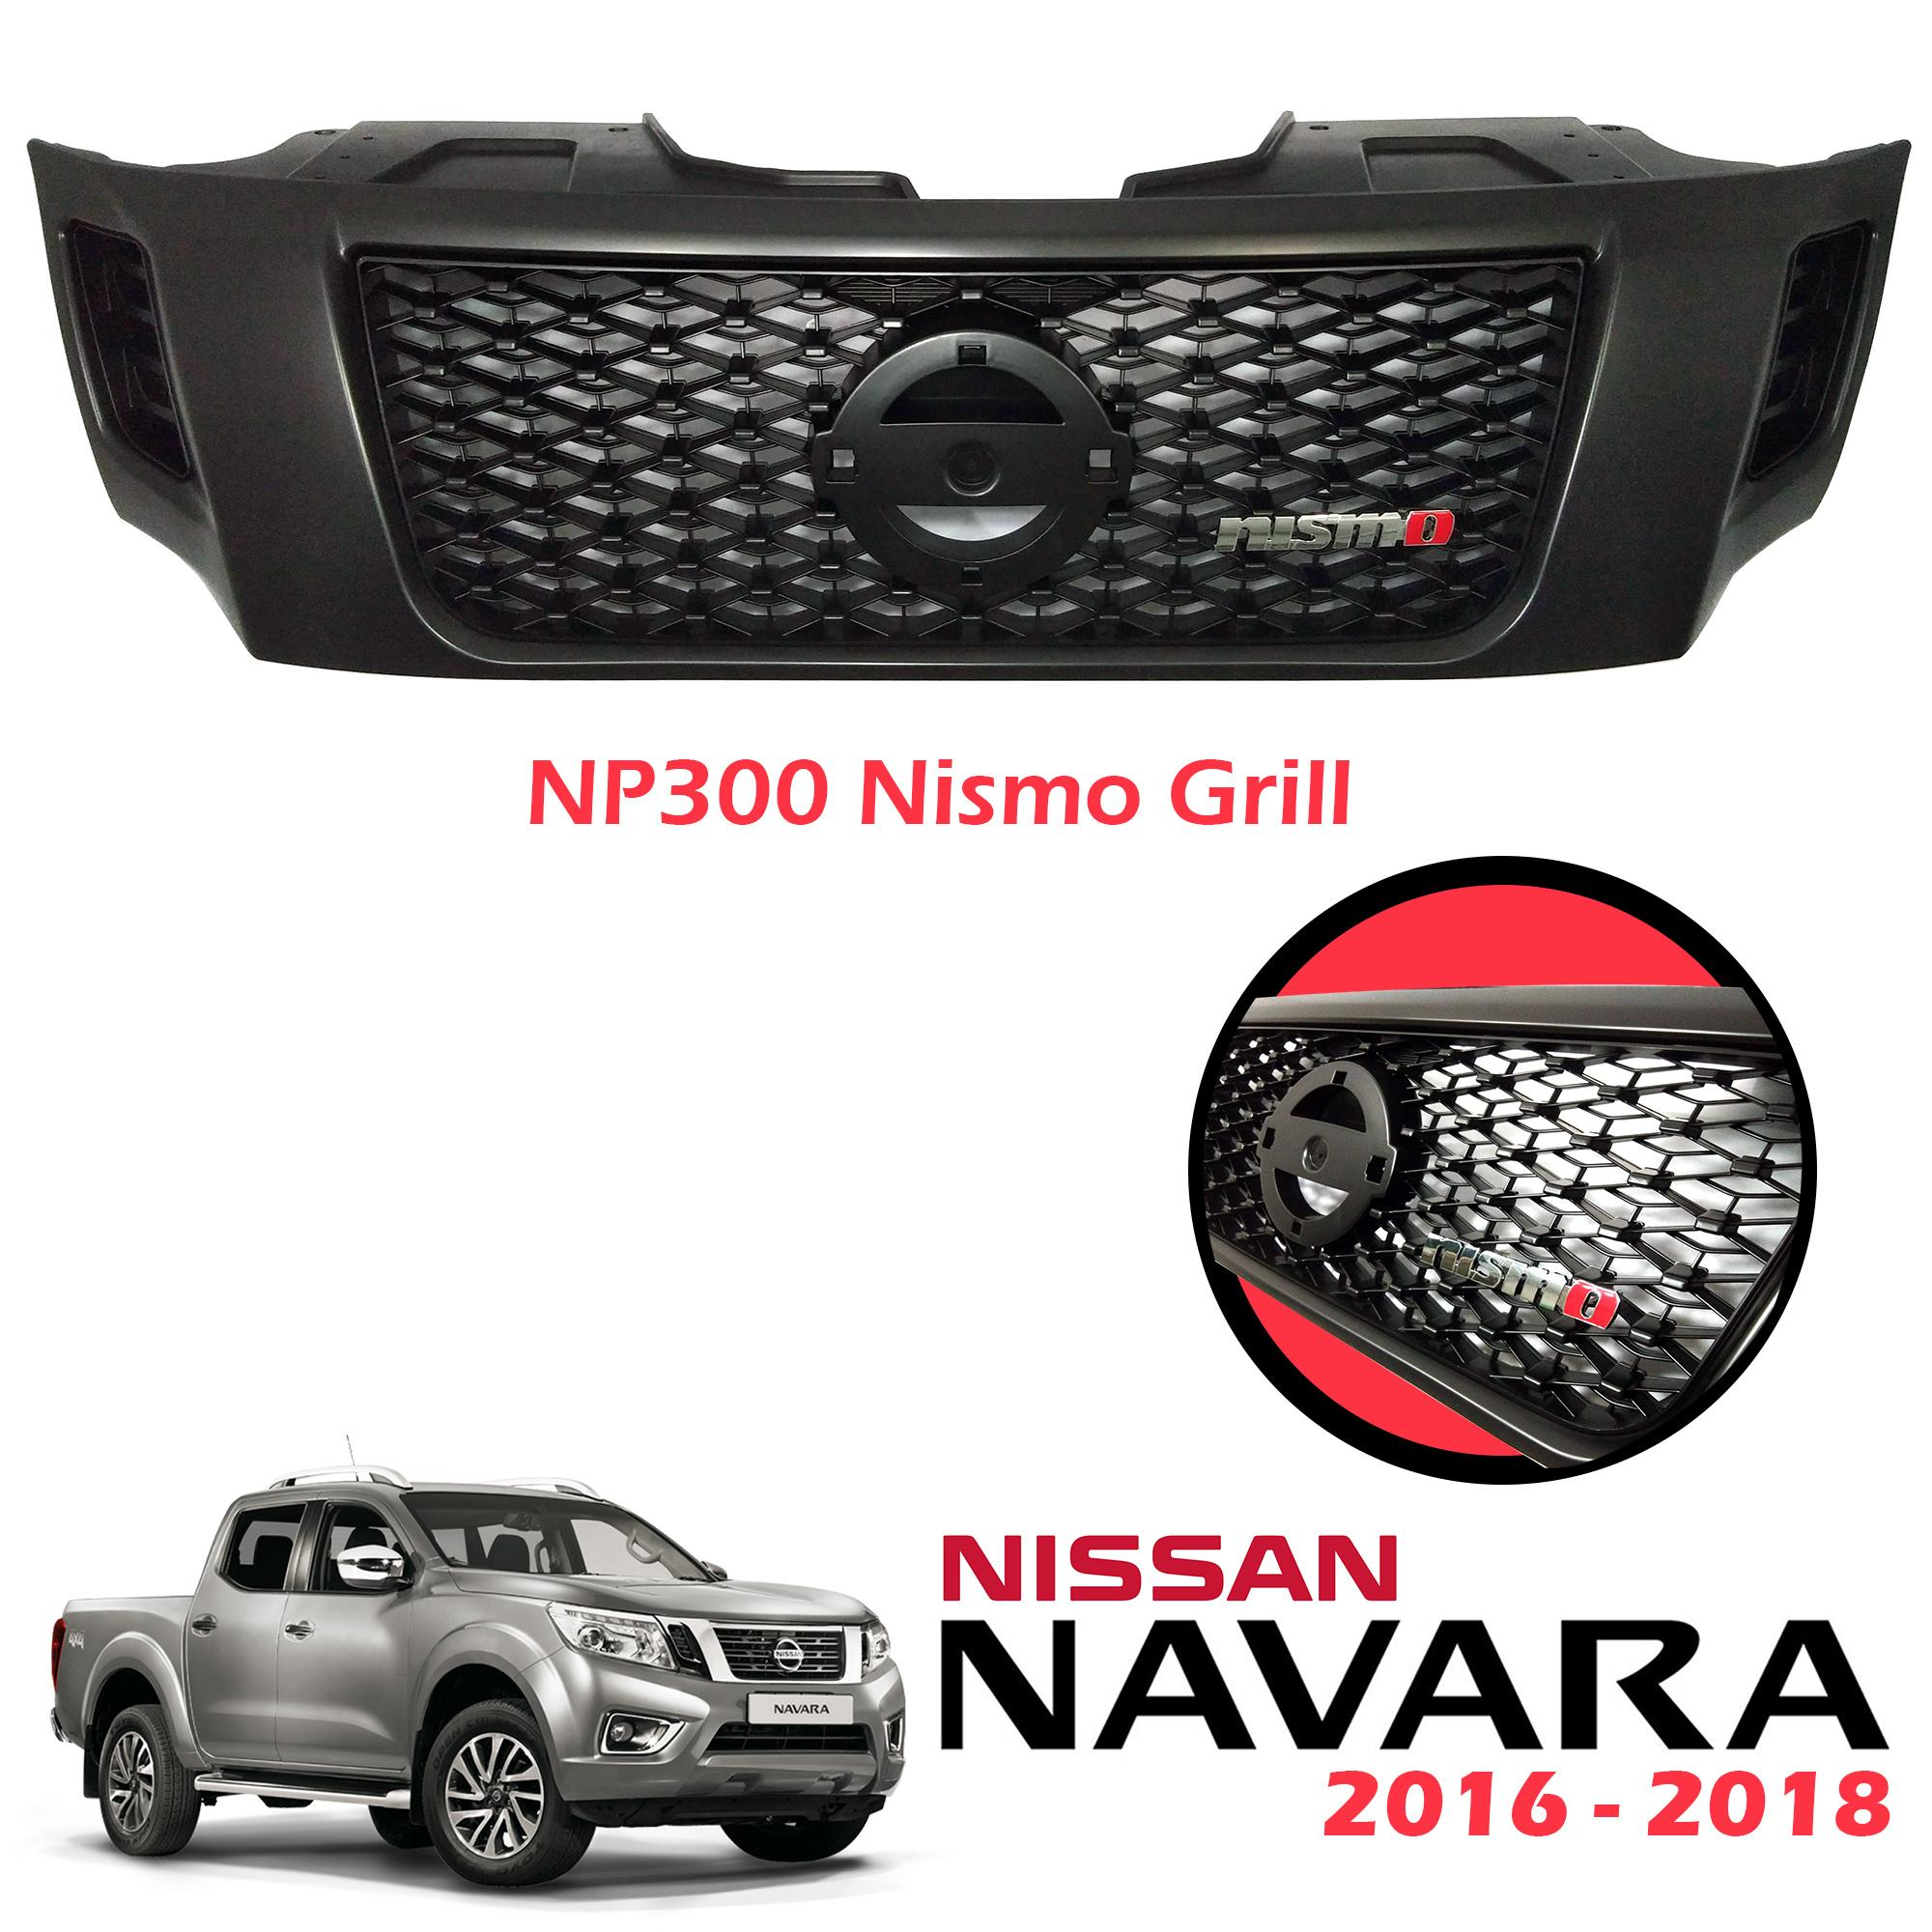 Nissan Navara NP300 2016-2018 Nismo Front Grill with Nismo Grill Emblem